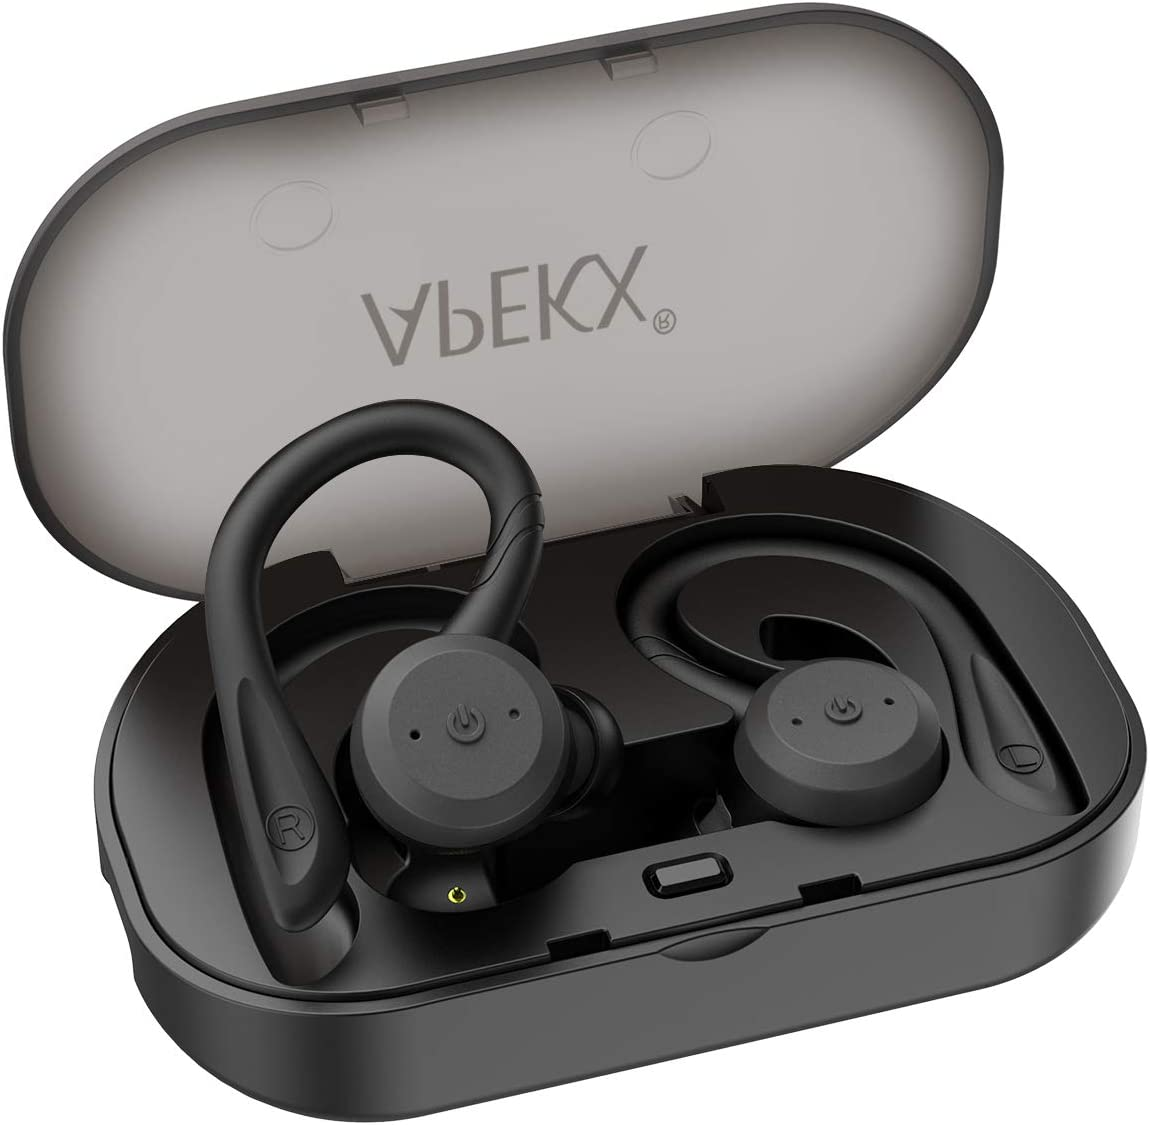 Wireless Headphones APEKX True Wireless Bluetooth 5.0 Sports Earbuds, IPX7 Waterproof Stereo HiFi Sound, Built-in Mic Earphones with Charging Case Black